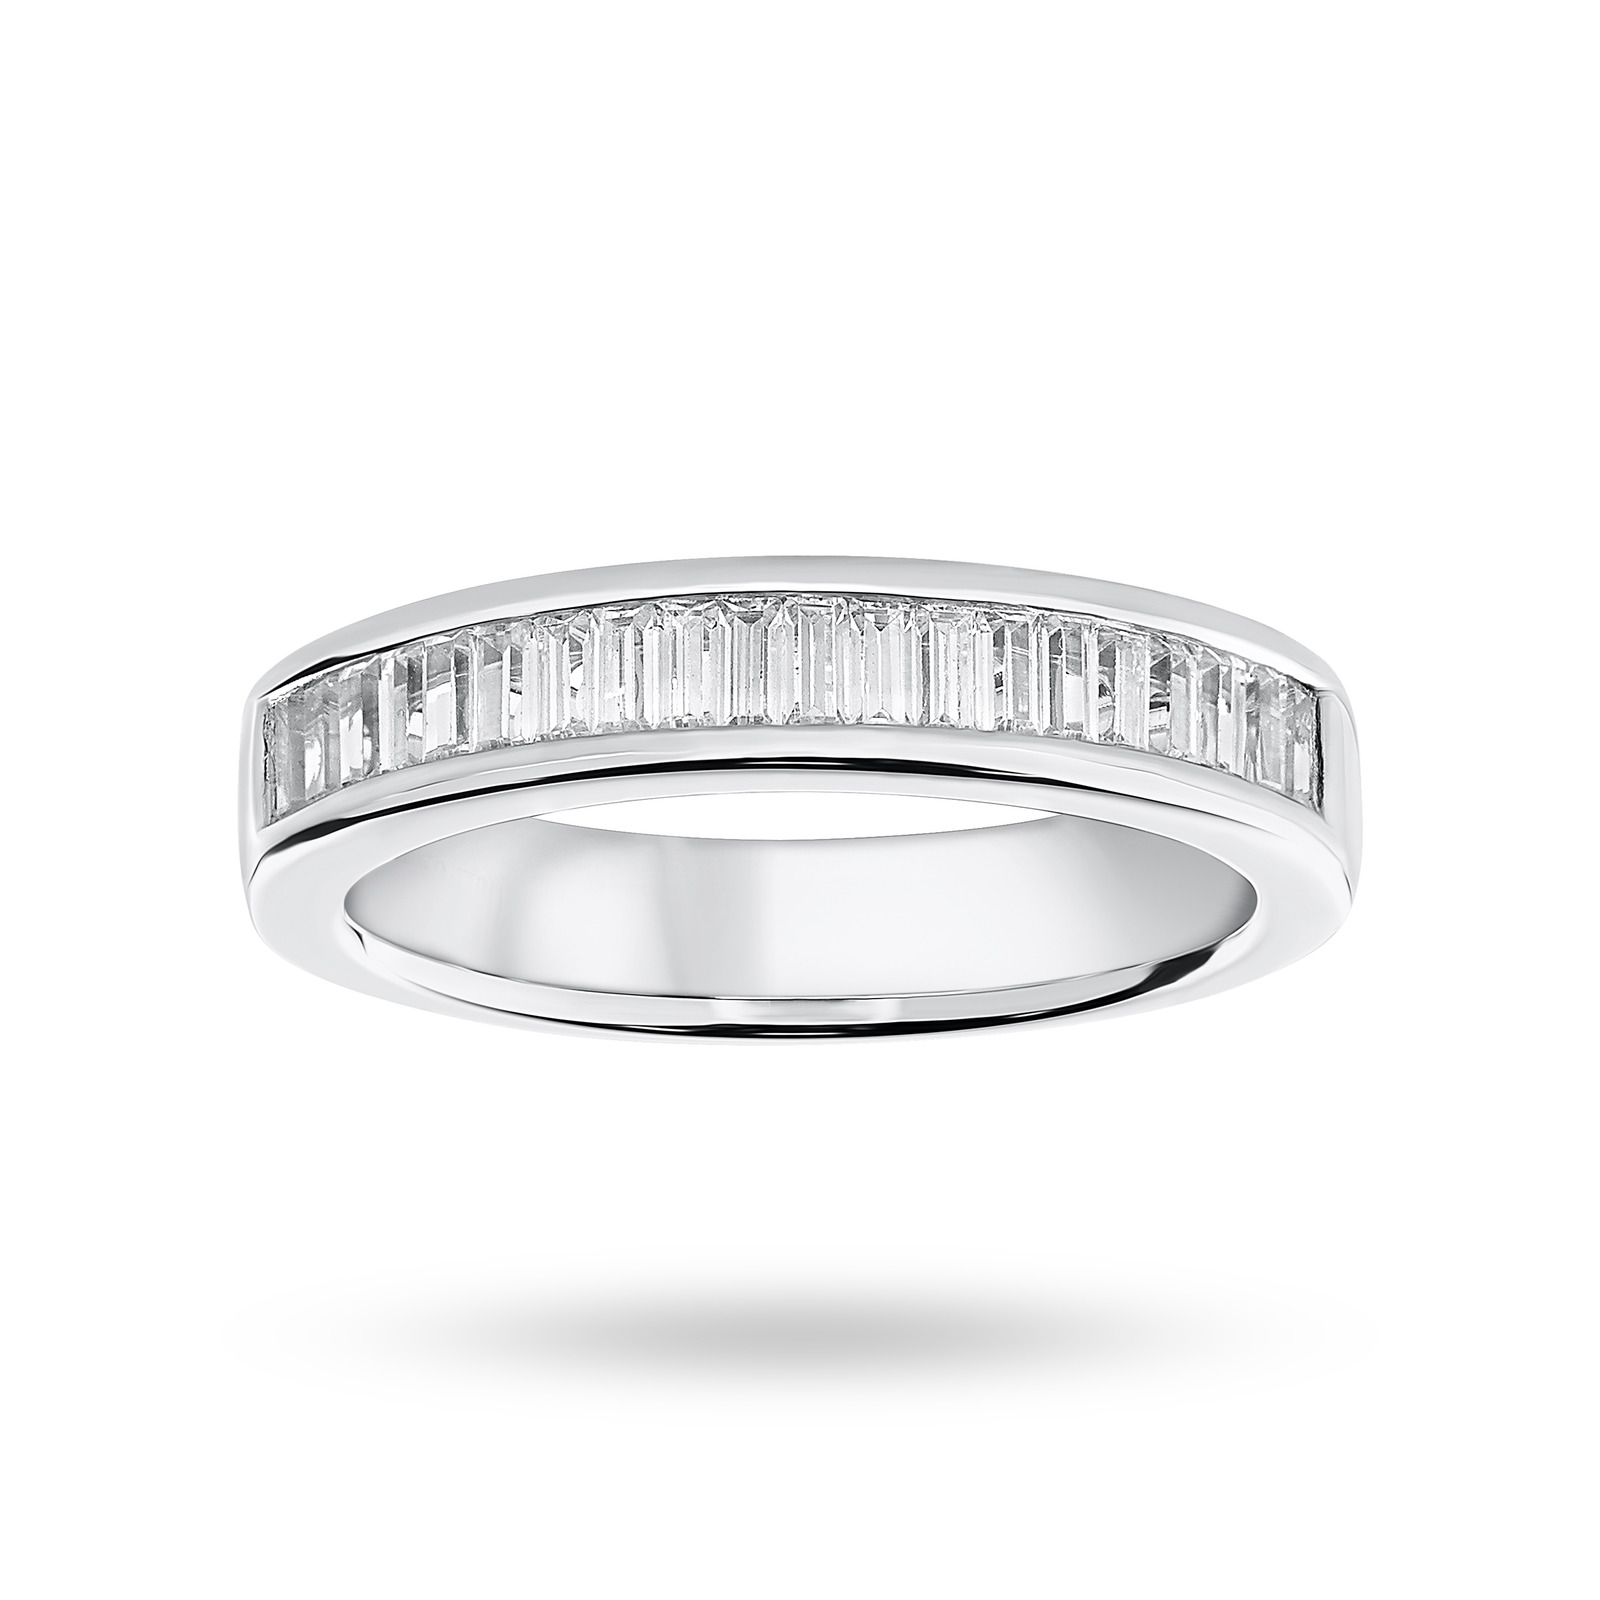 Platinum 0.75 Carat Baguette Half Eternity Ring